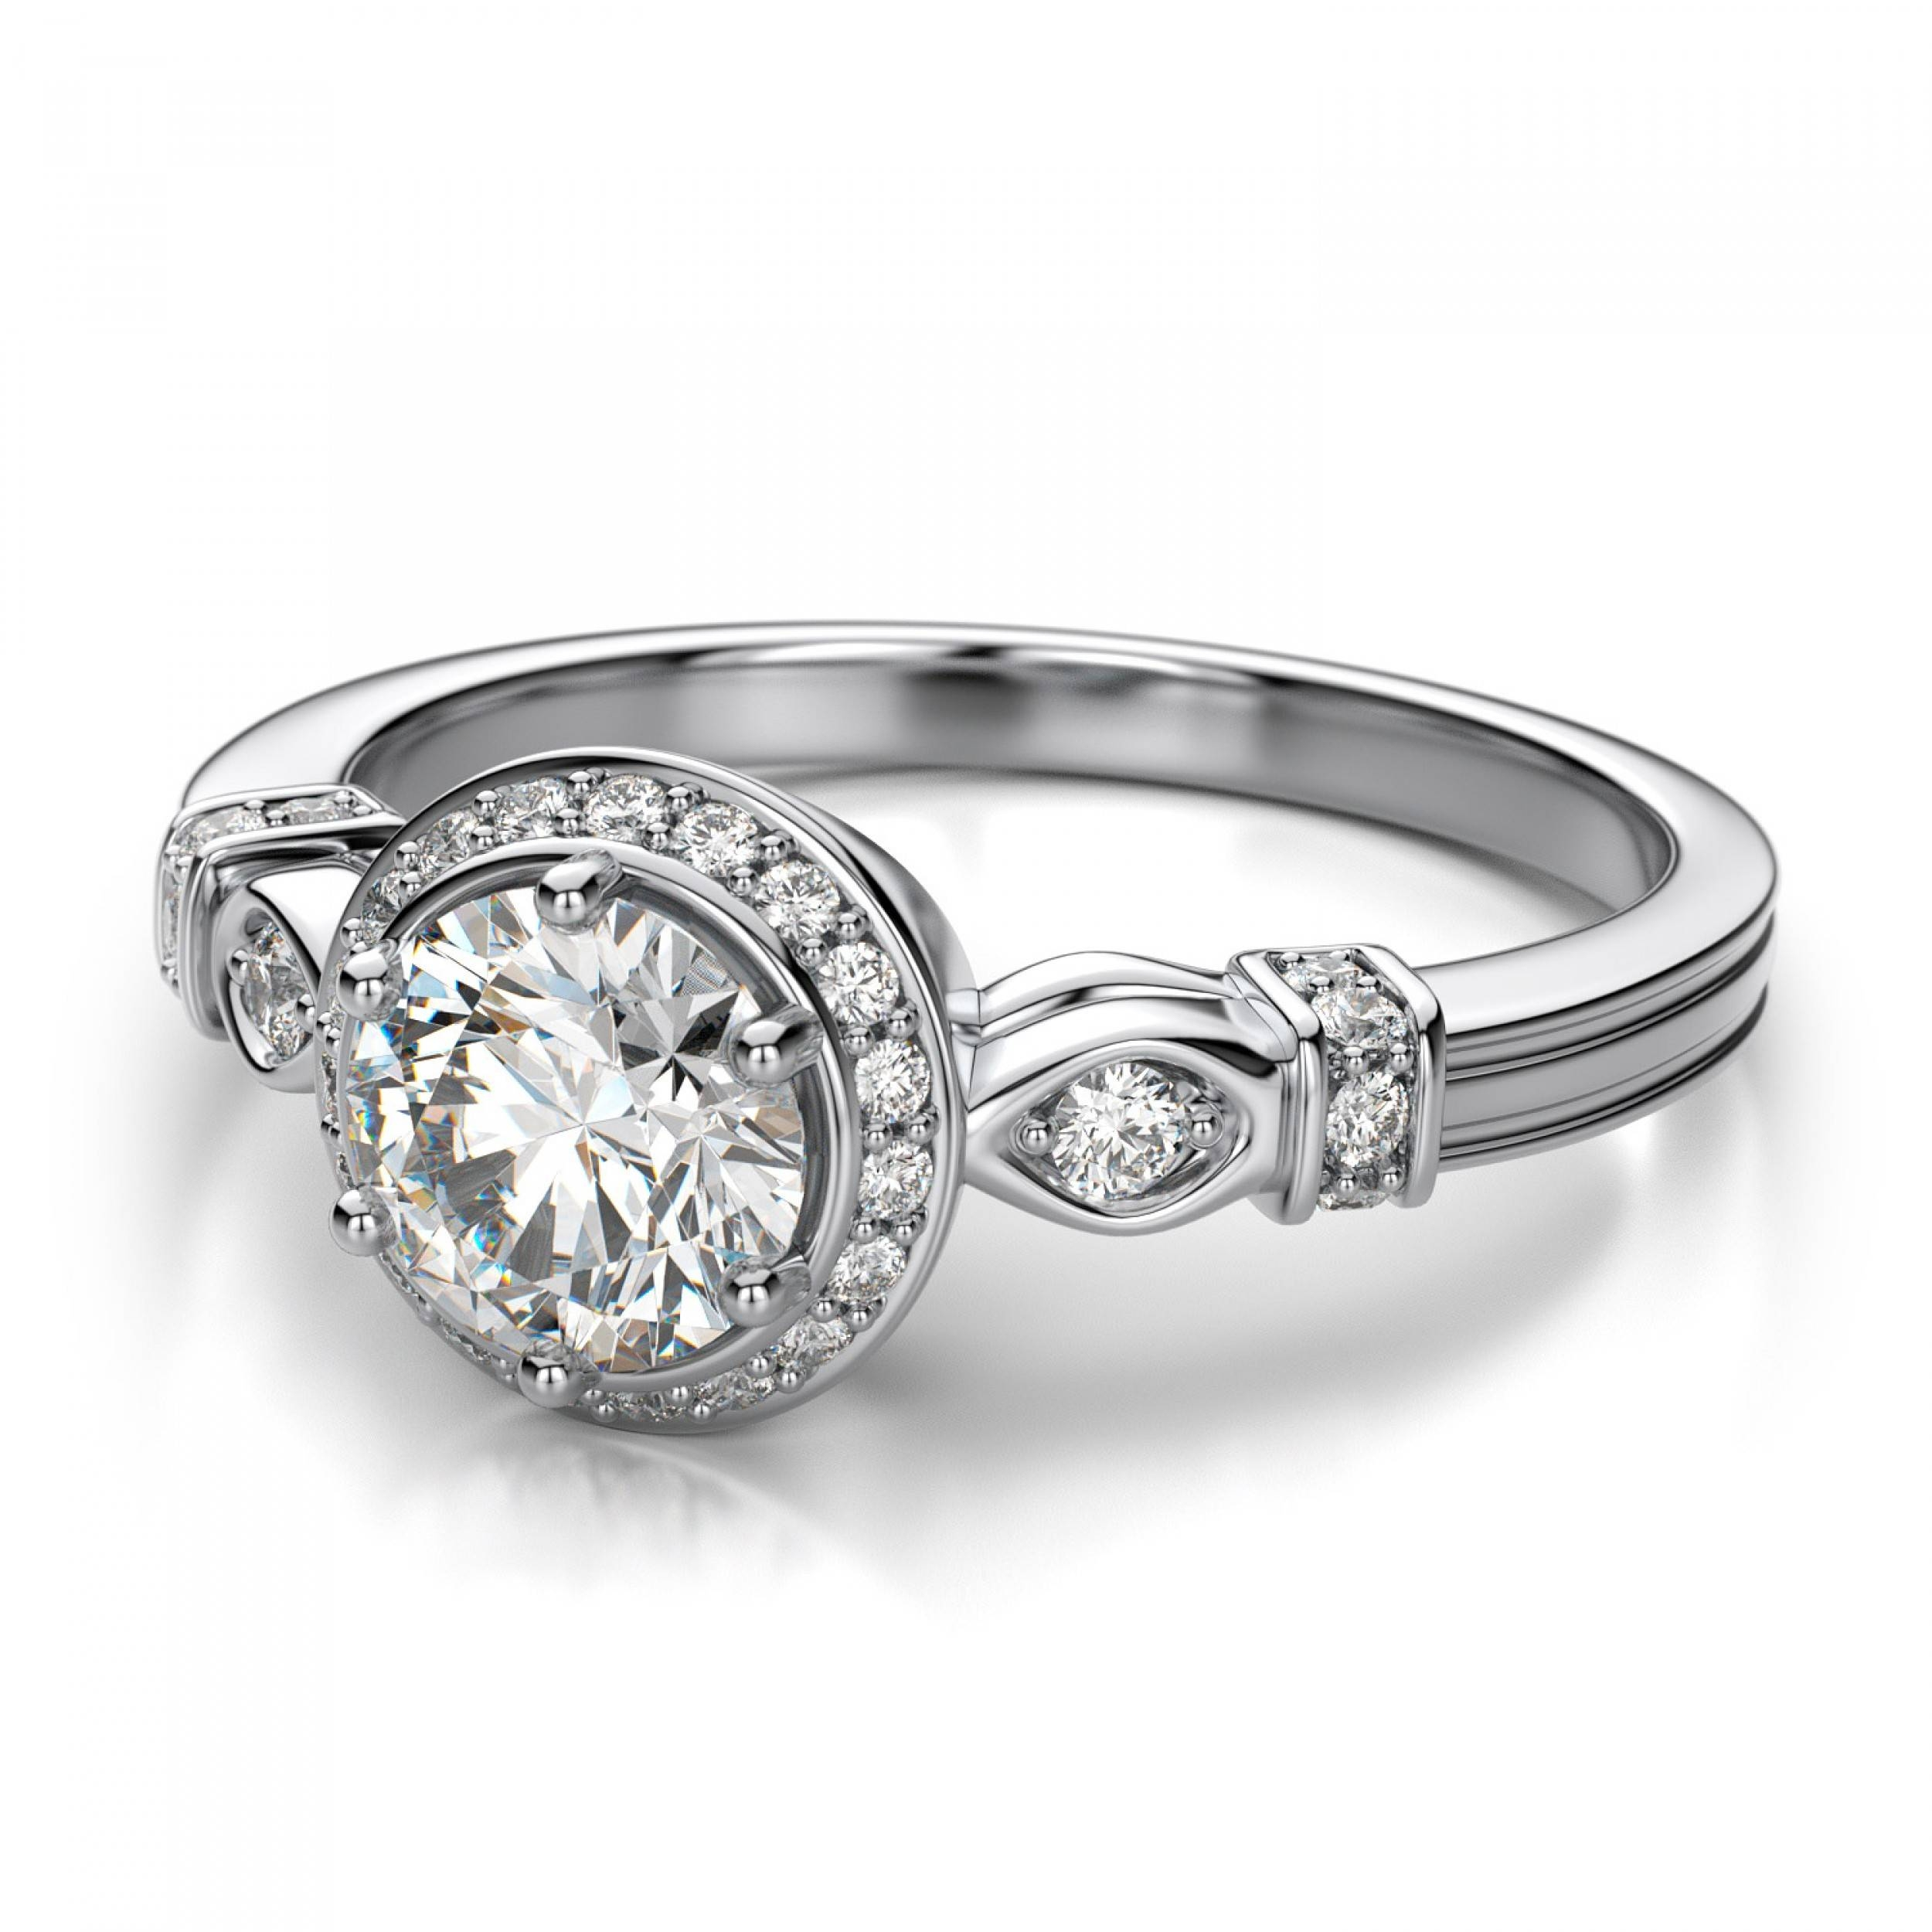 engagement inspirations vintage within of promise round antique wedding stud rings diamond